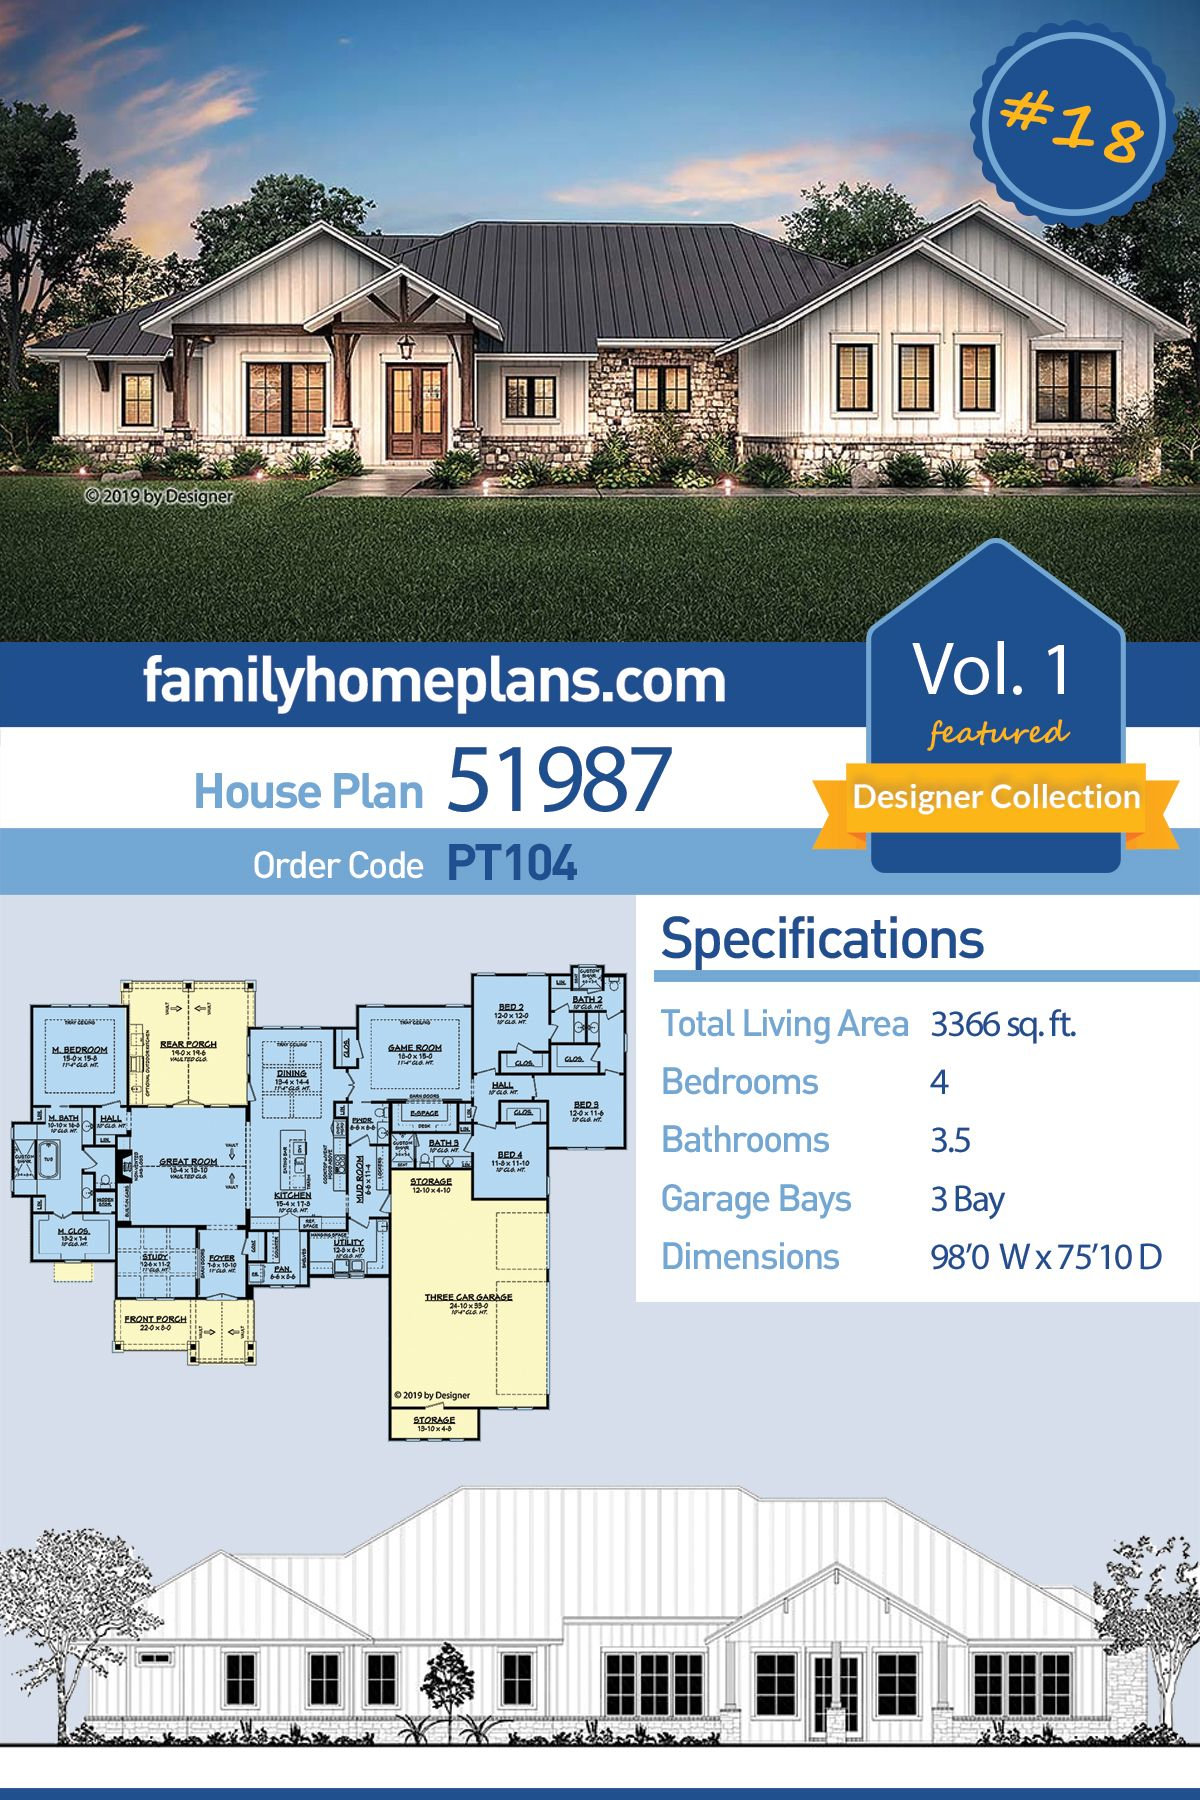 Ranch Style House Plan 51987 With 4 Bed 4 Bath 3 Car Garage Ranch Style Homes Ranch Style House Plans Ranch House Plans